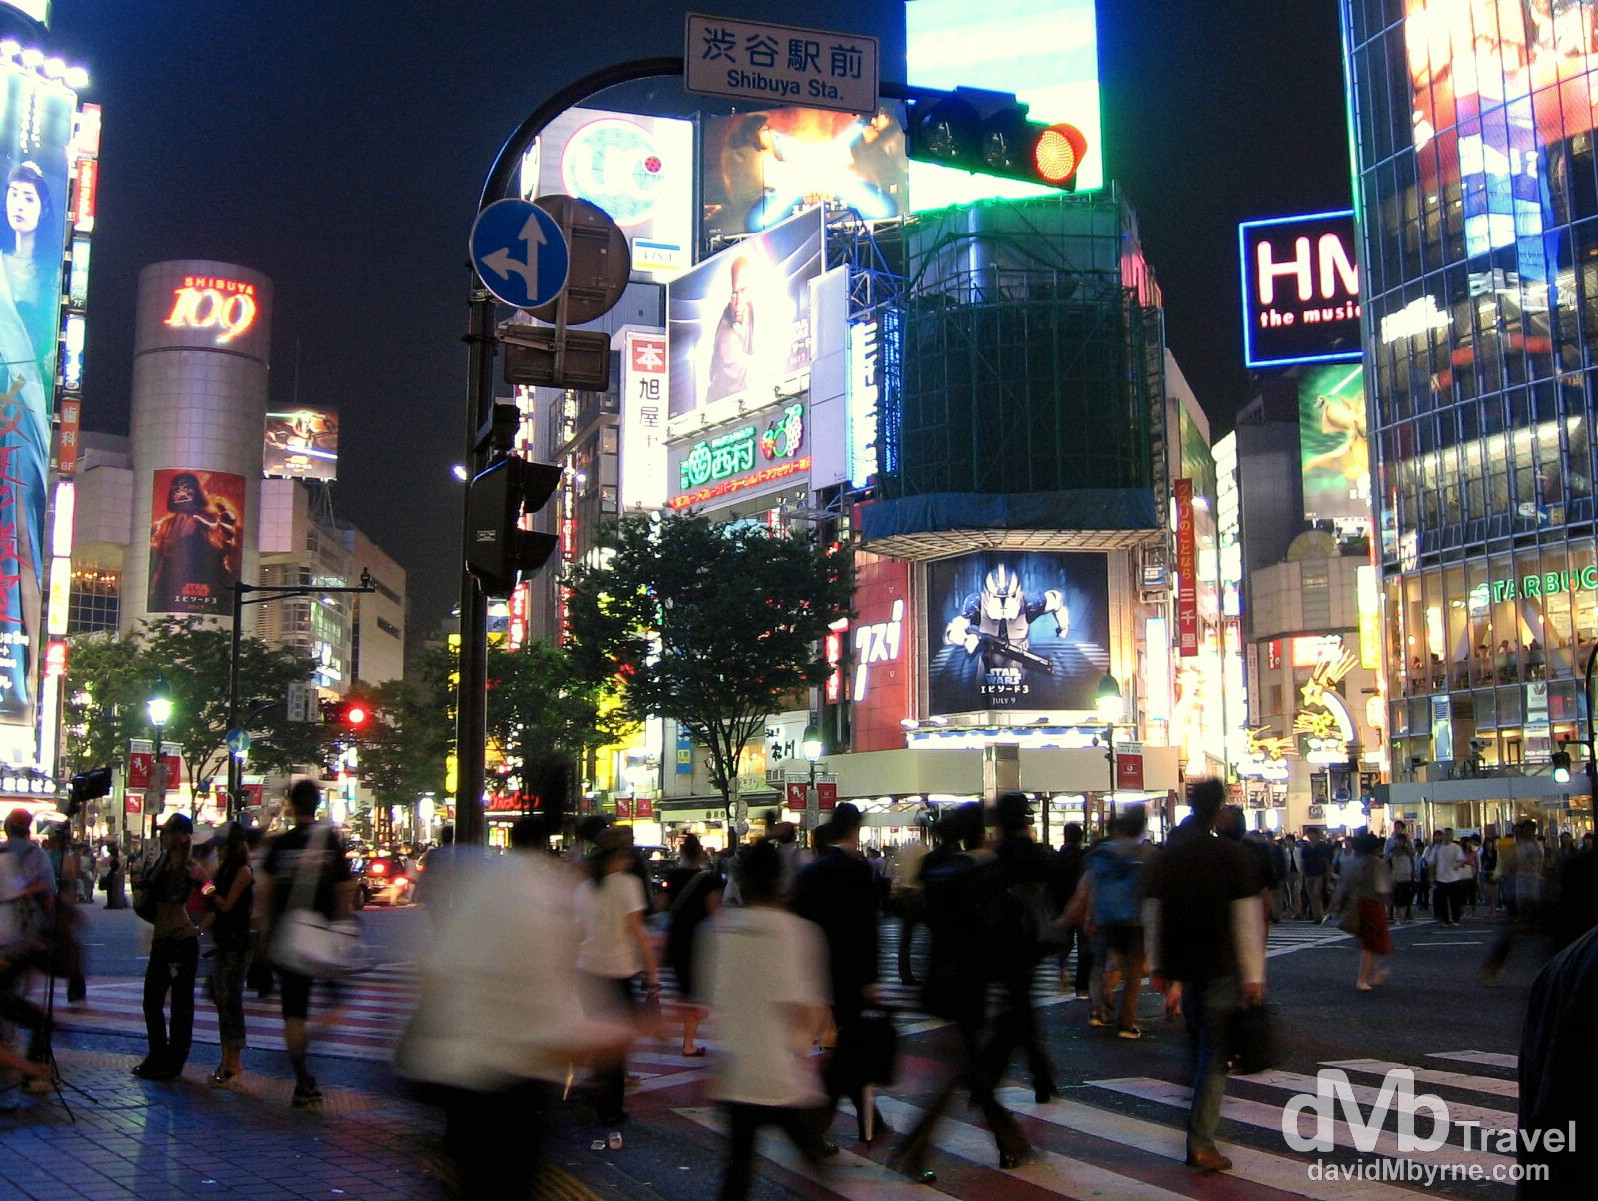 A busy crossroads in the Shibuya shopping and entertainment district, Tokyo, Japan. July 15th 2005.